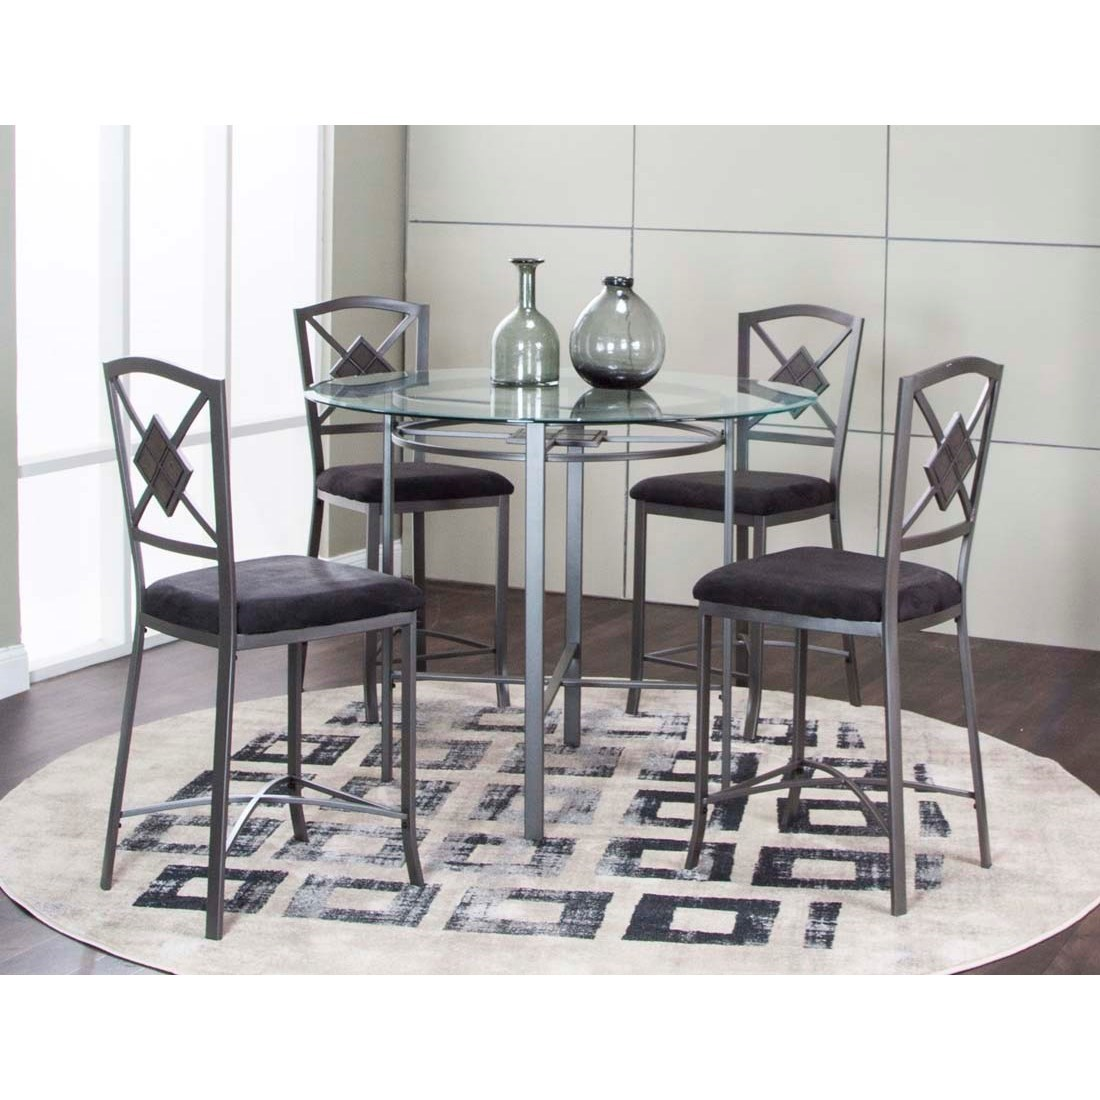 Milano 5-Piece Counter Height Table and Chair Set by Cramco, Inc at Lapeer Furniture & Mattress Center